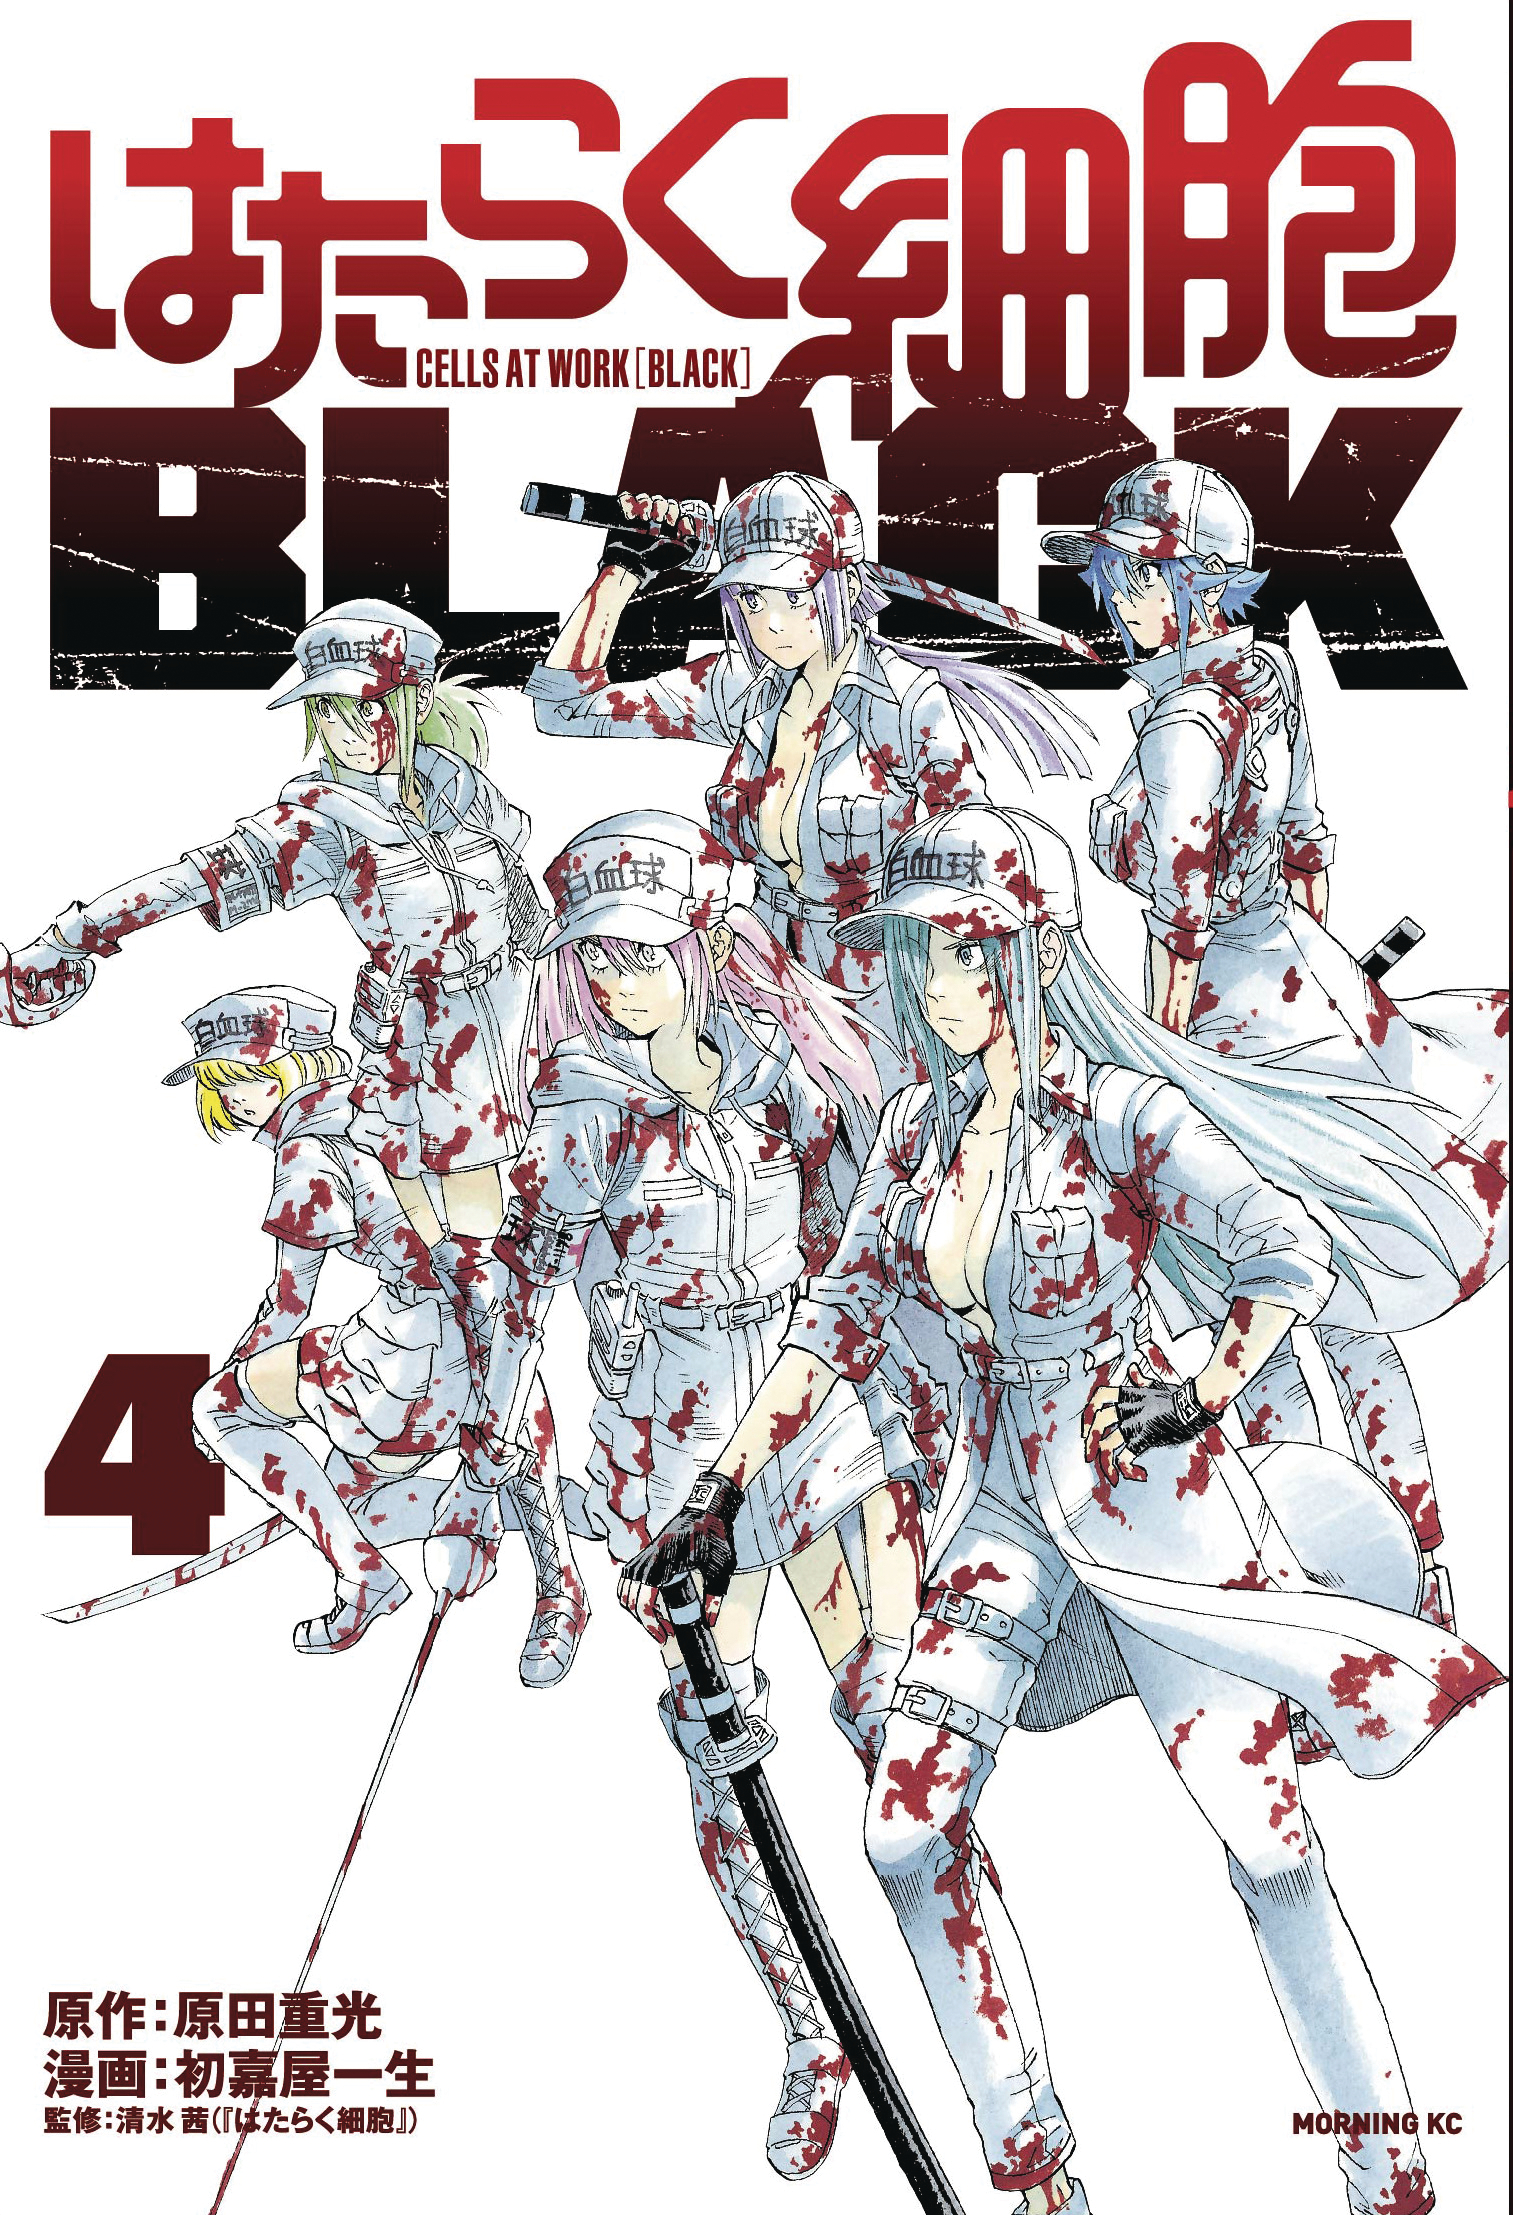 CELLS AT WORK CODE BLACK GN VOL 04 (RES)